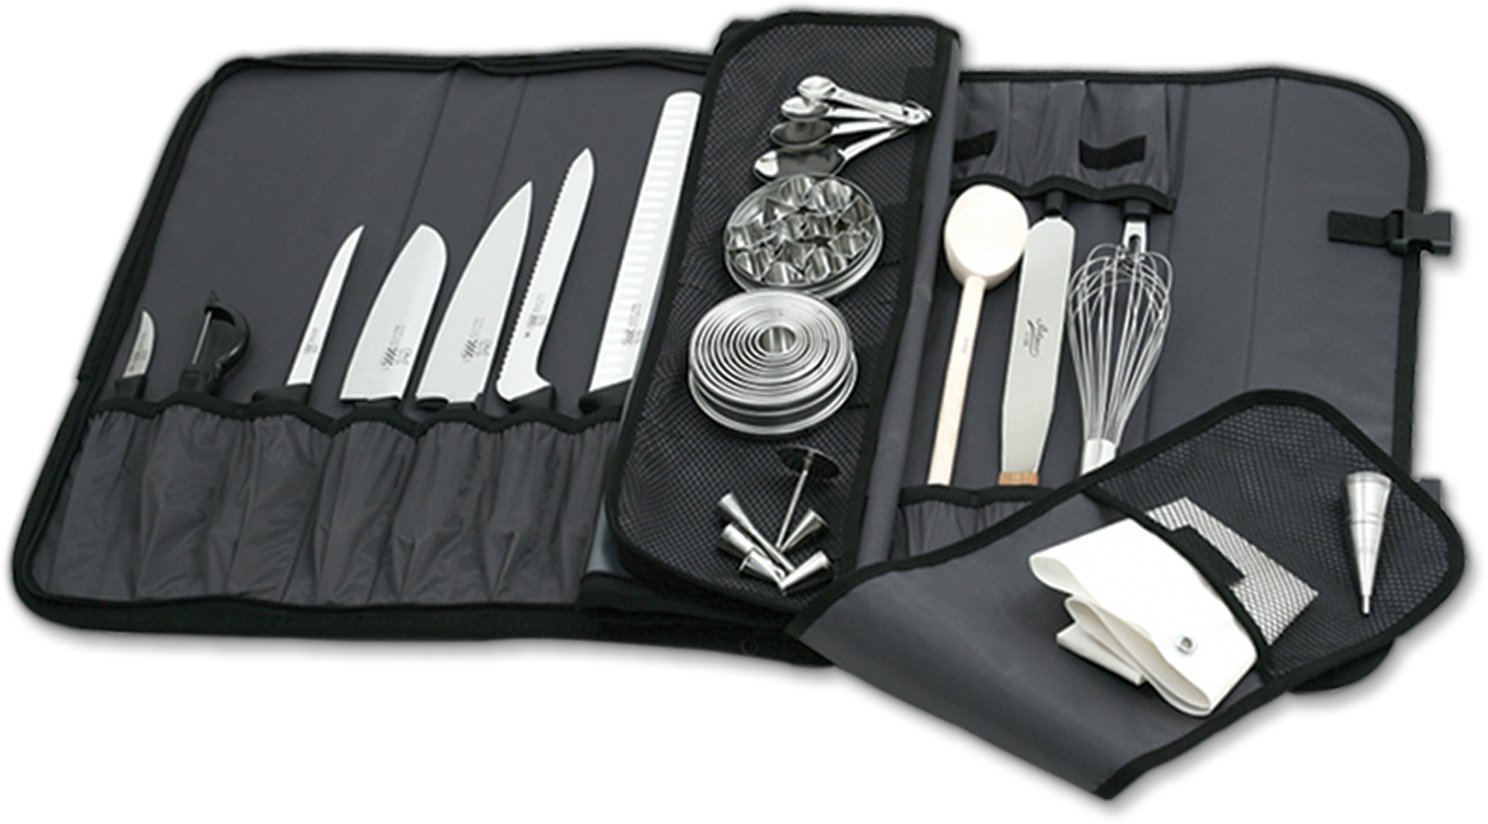 Amazon.com: Mercer Culinary 10 - Estuche de cuchillo de ...